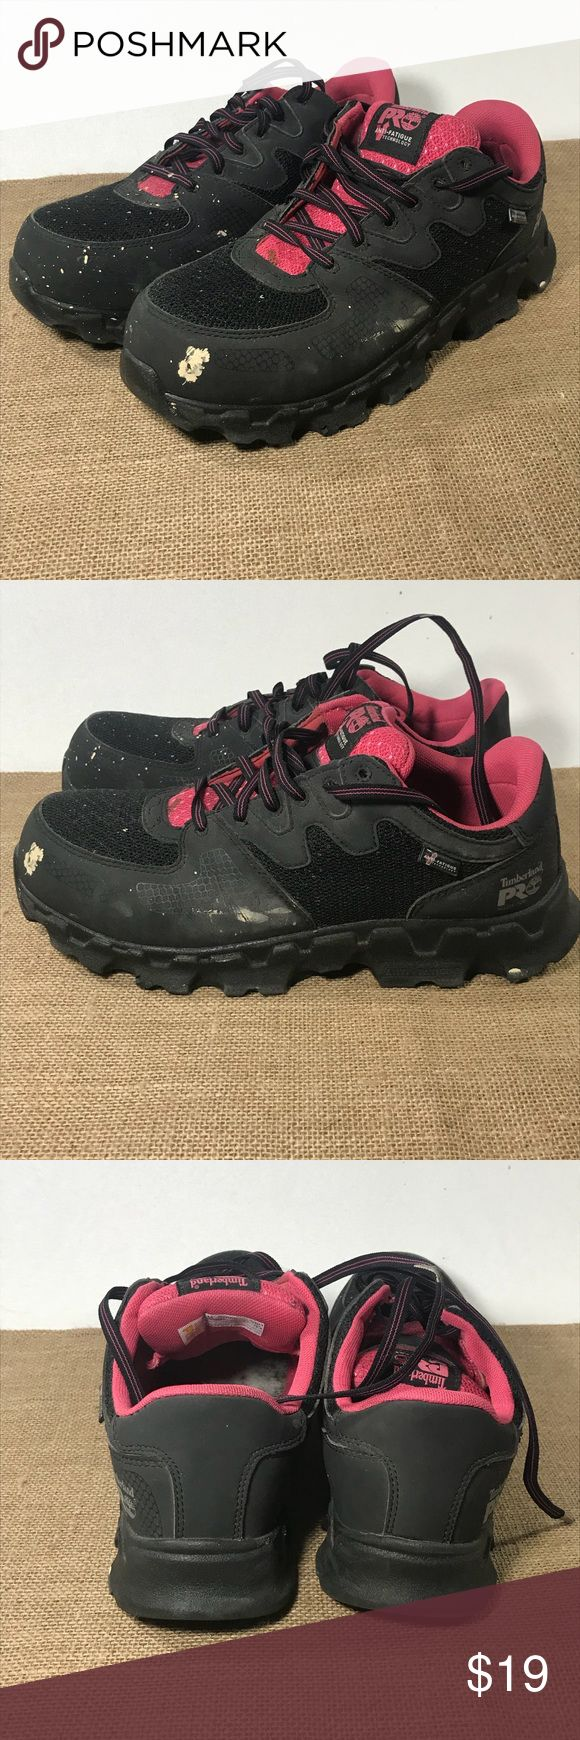 Womens 9.5 Safety Work Shoes Alloy Toe Timberland In great condition besides the paint splatter. Timberland Shoes Sneakers